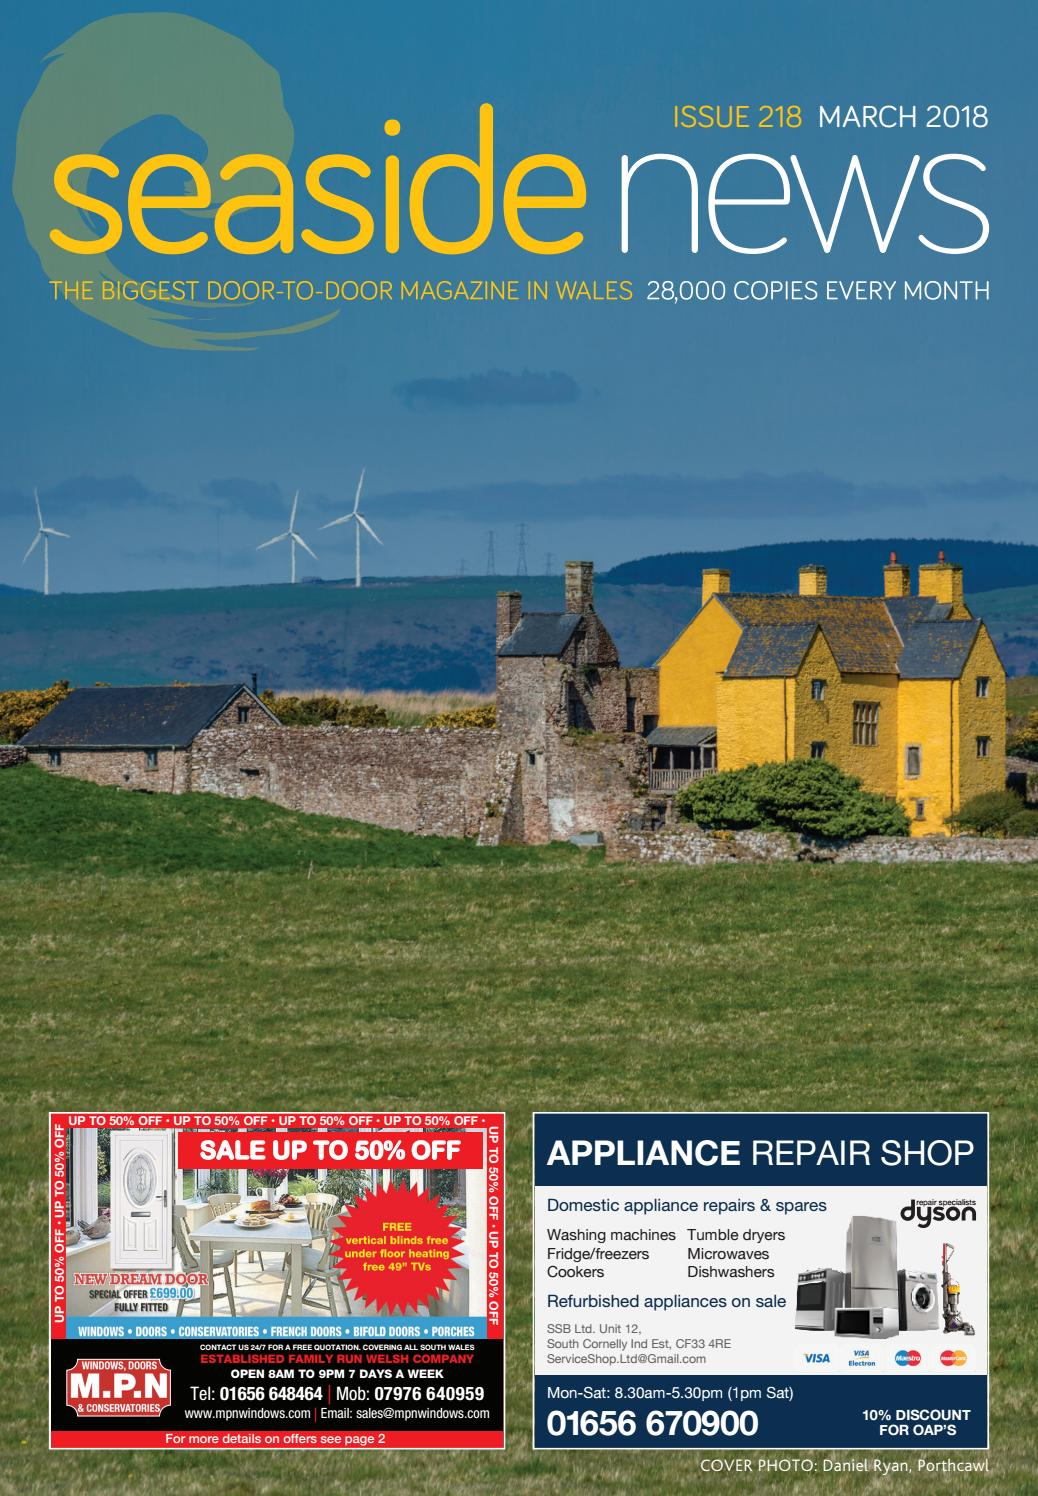 SEASIDE NEWS - MARCH 2018 ISSUE by Seaside News - issuu